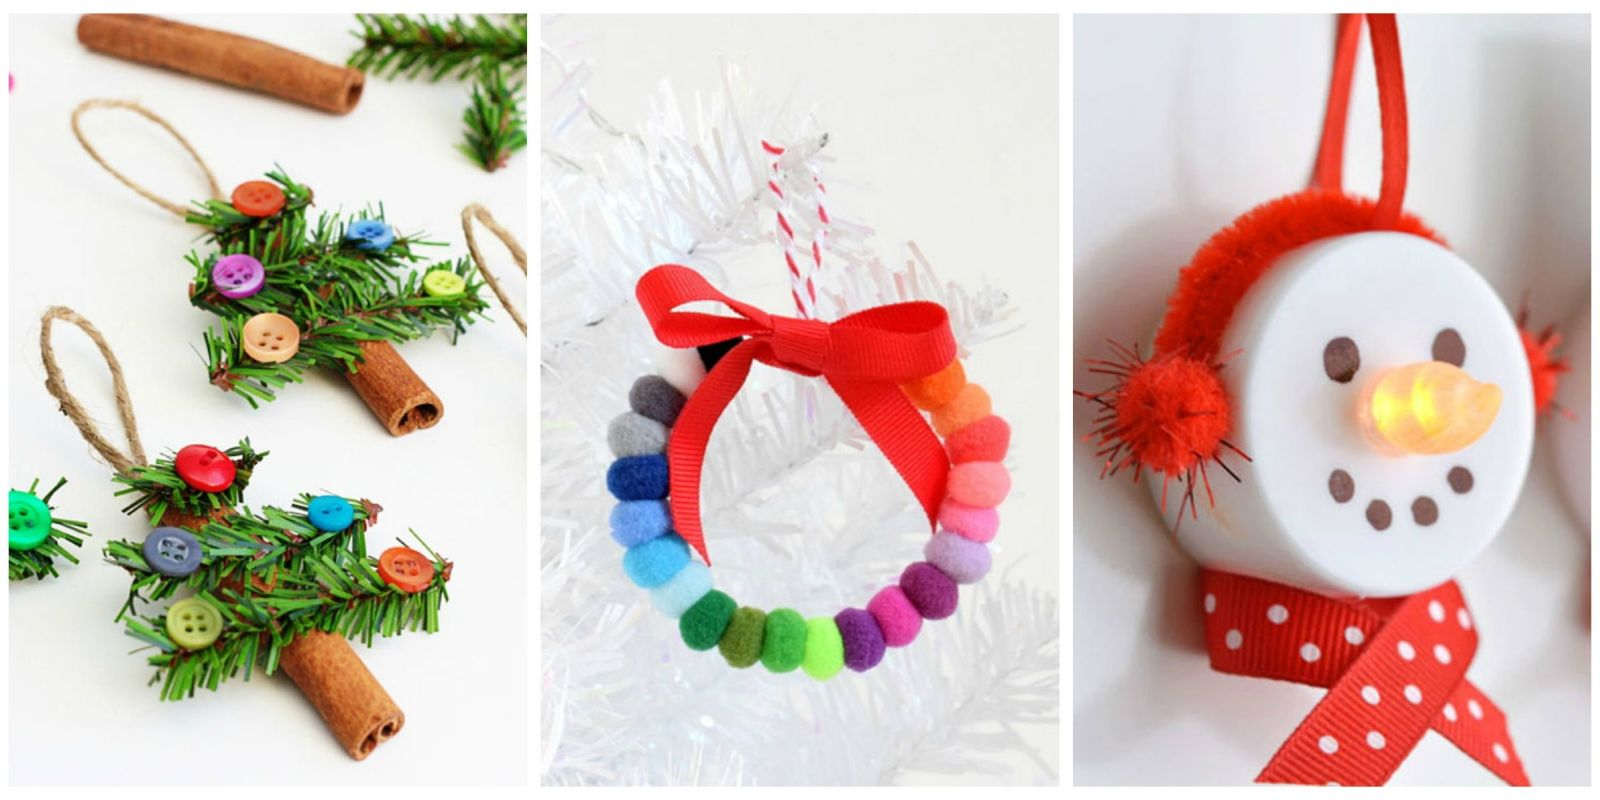 56 Diy Christmas Ornaments Unique Christmas Ornaments